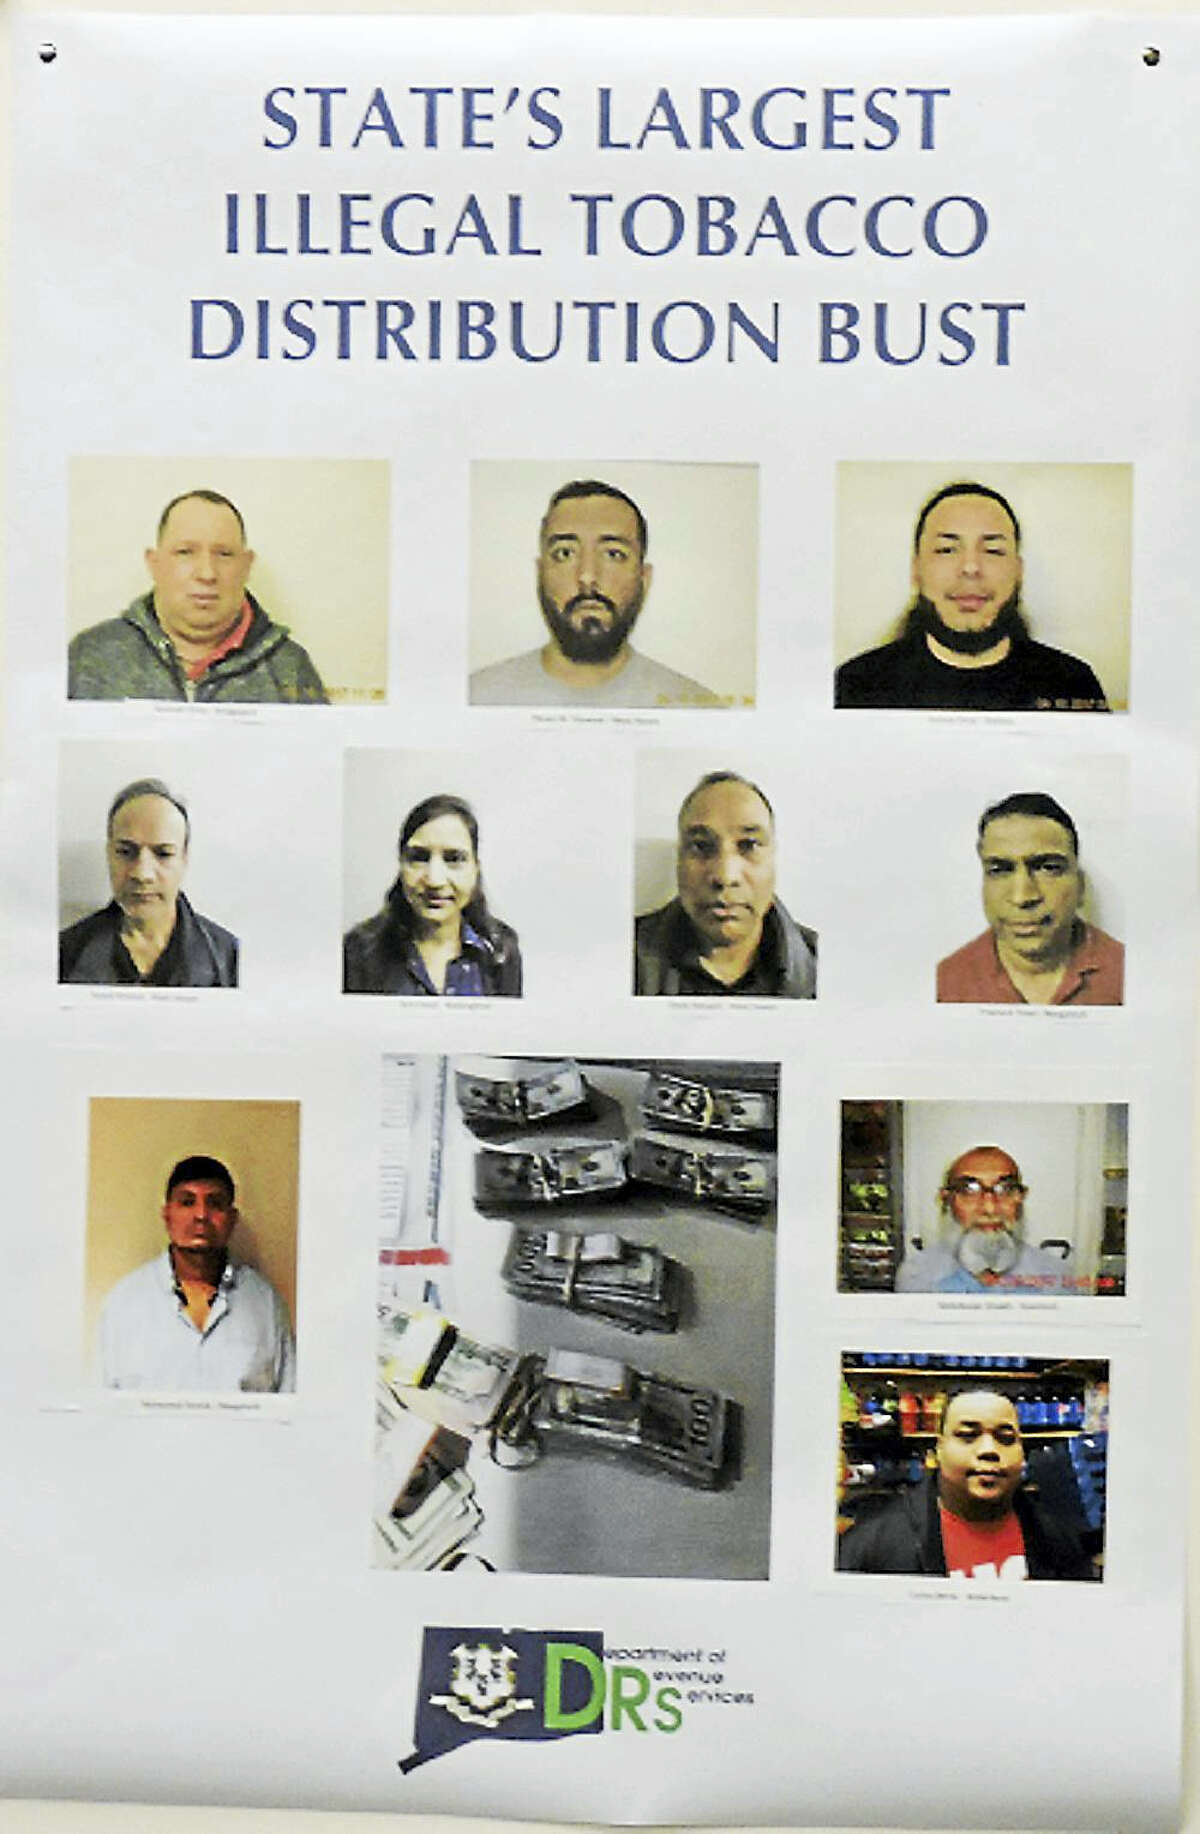 Photos of the 10 people arrested.